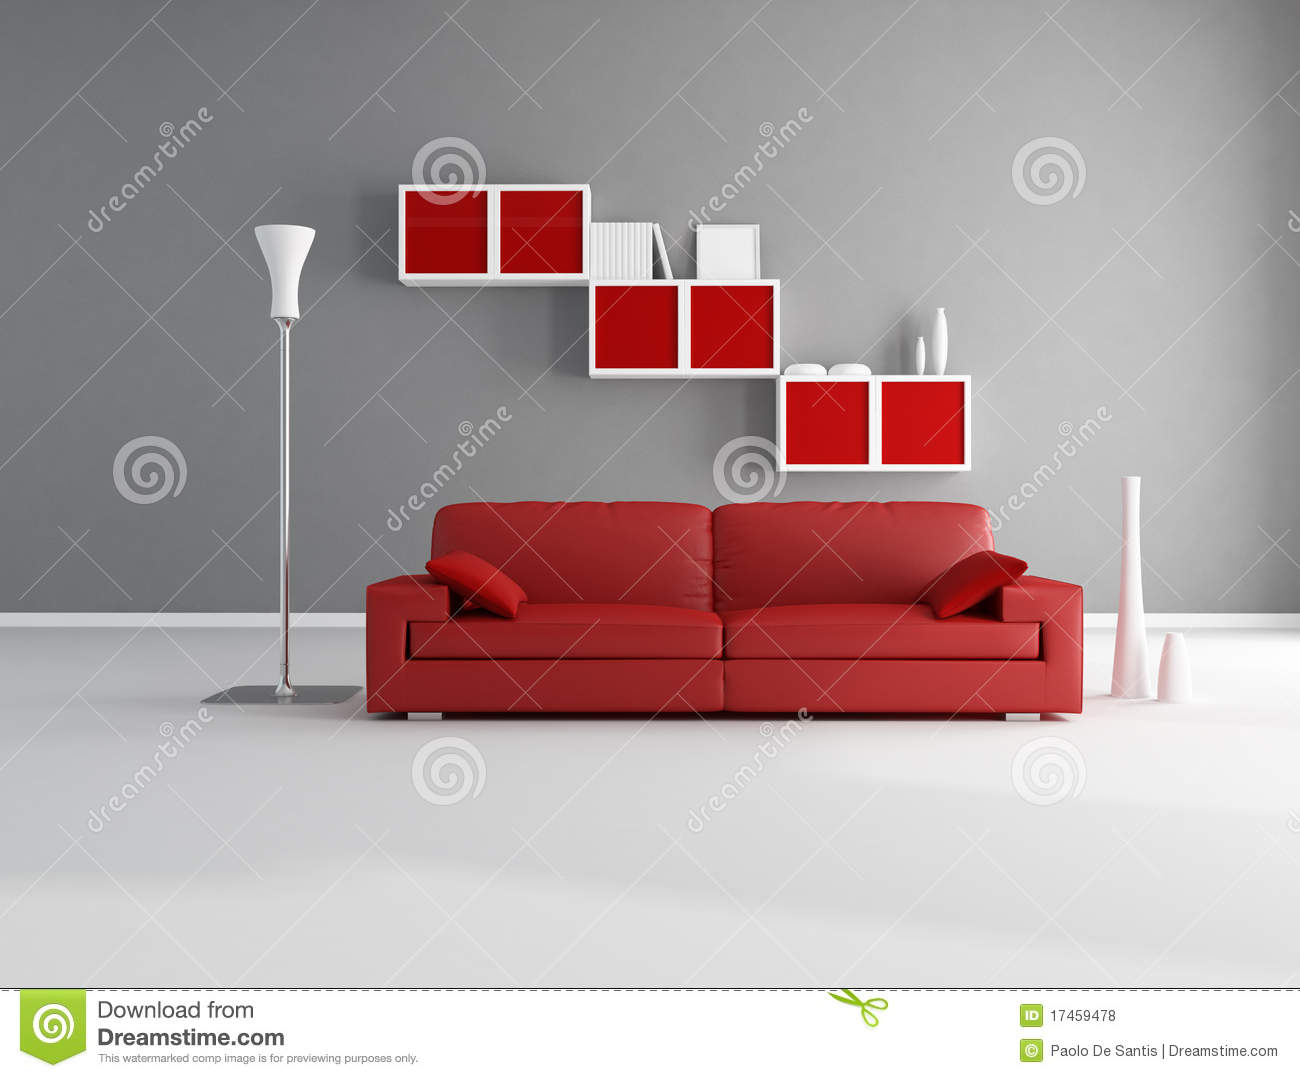 salon rouge et gris photos libres de droits image 17459478. Black Bedroom Furniture Sets. Home Design Ideas